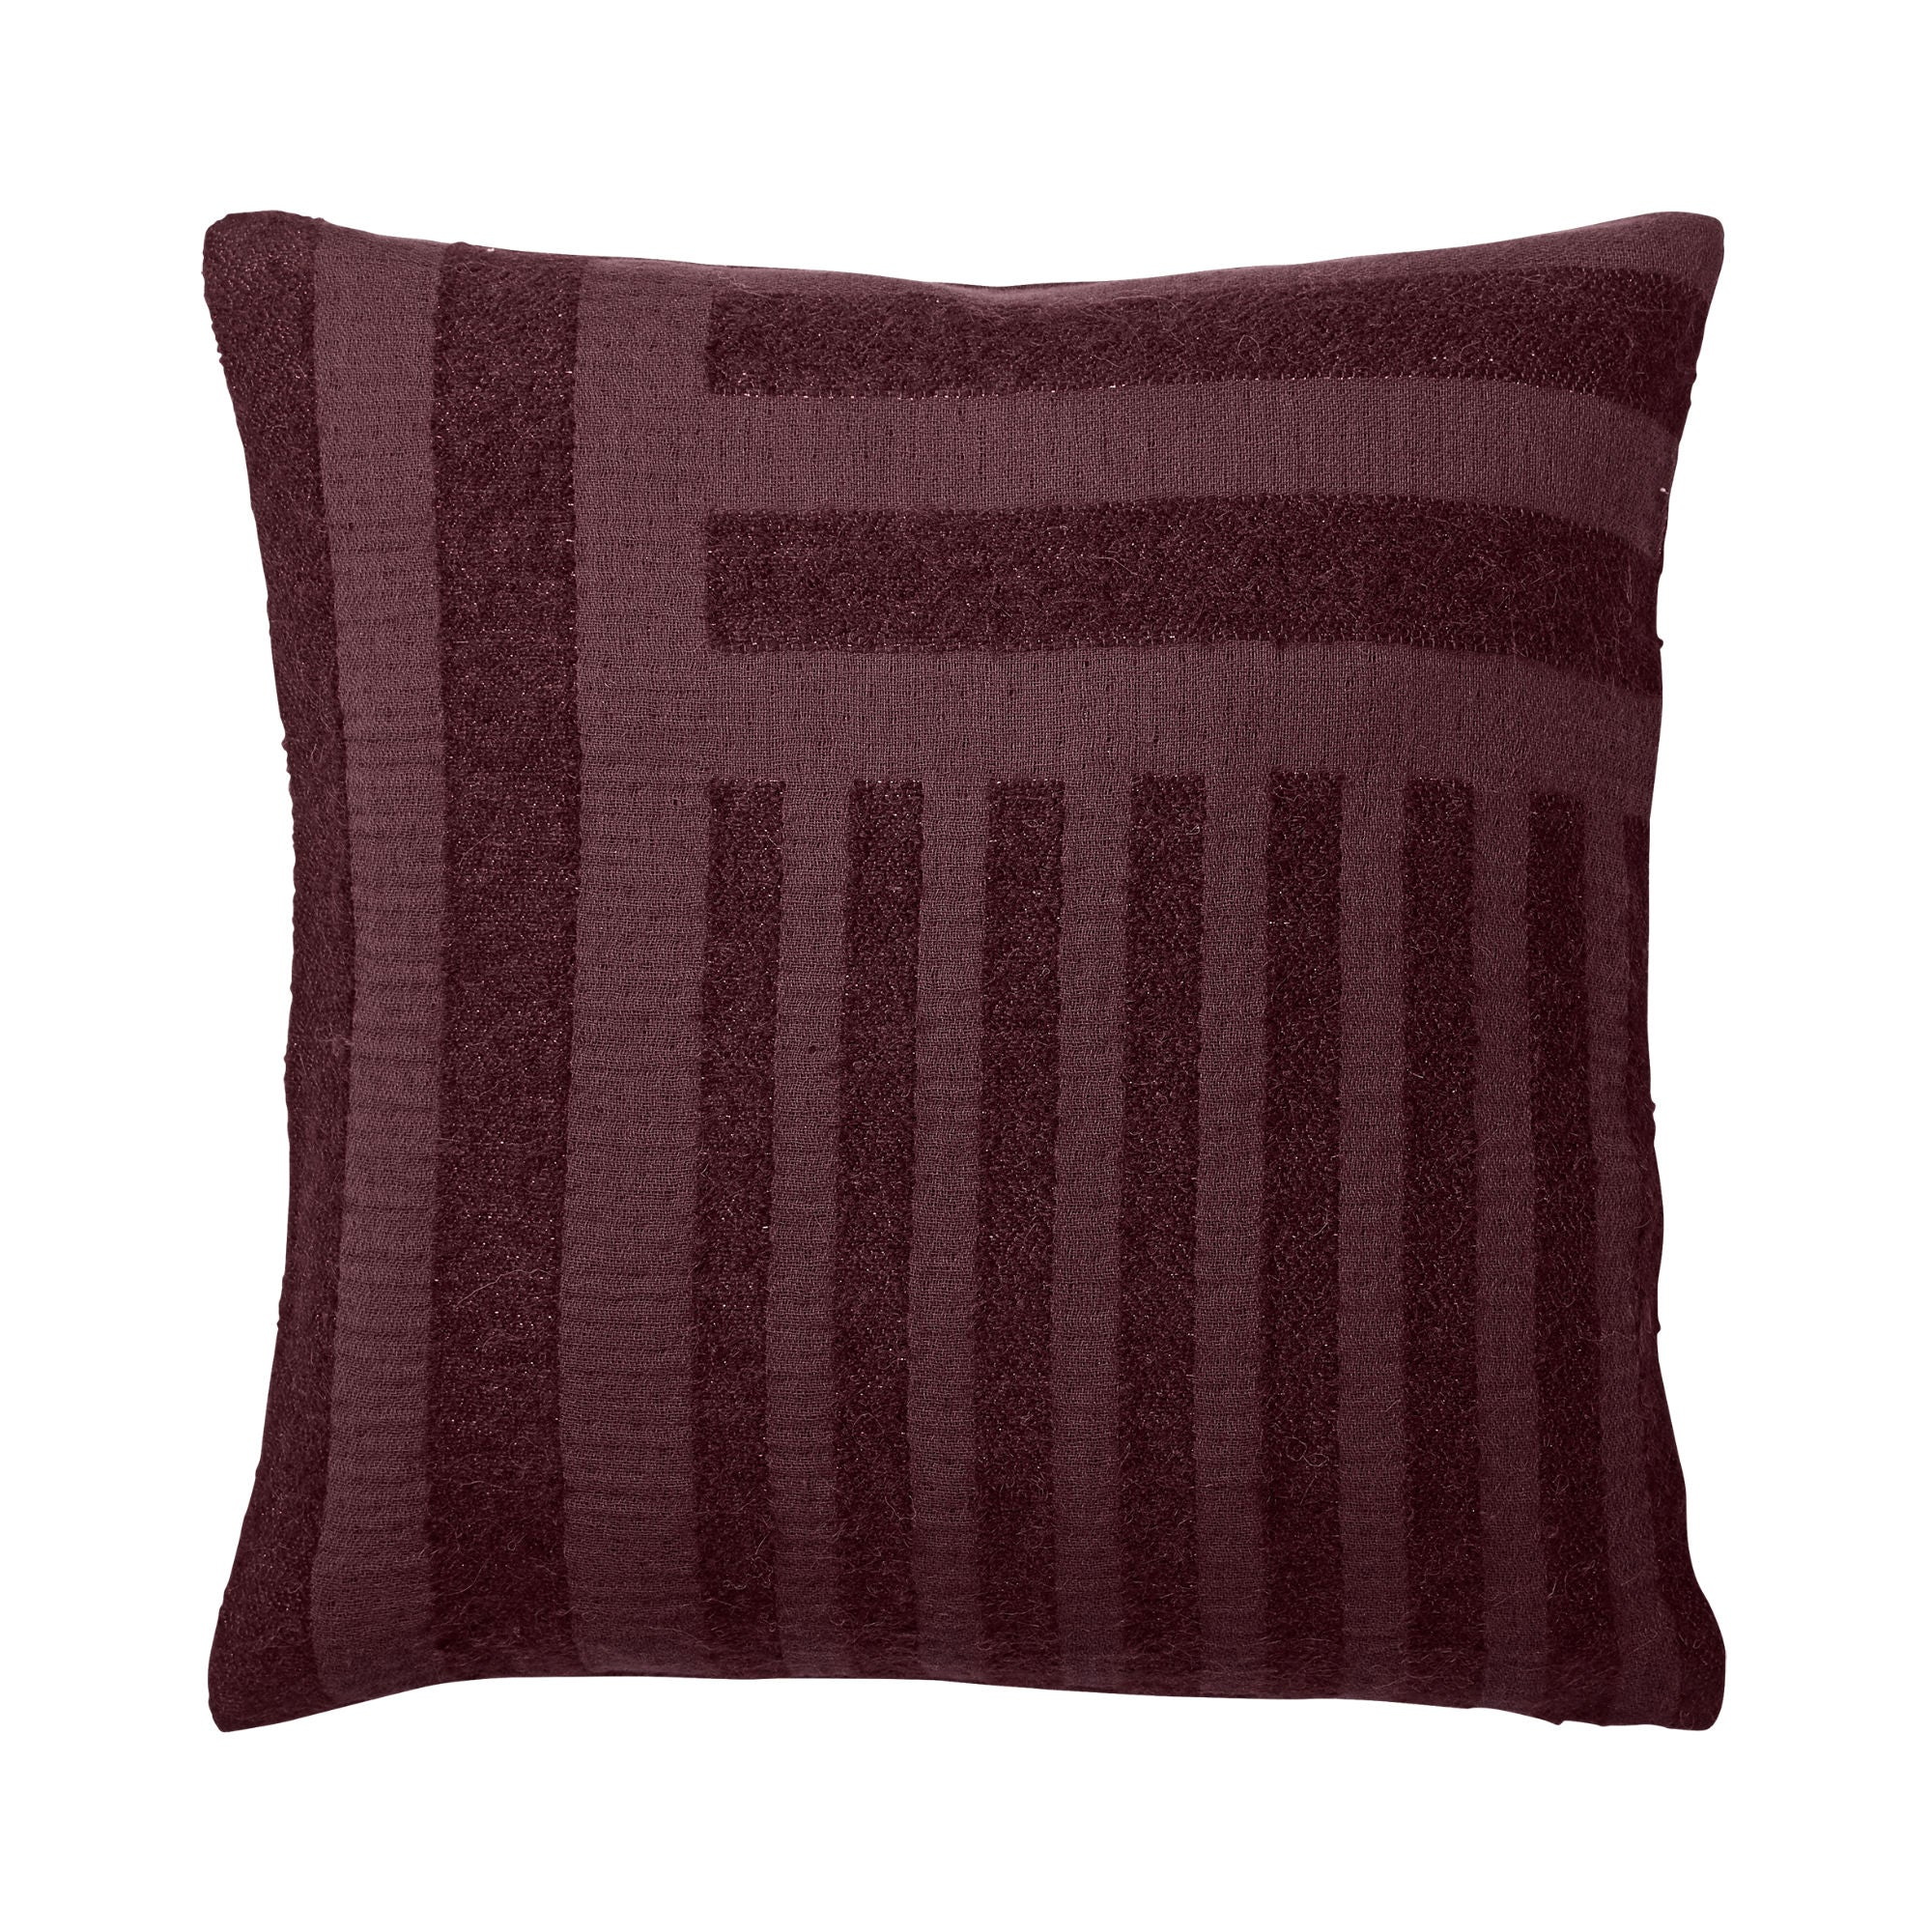 AYTM Contra cushion , bordeaux